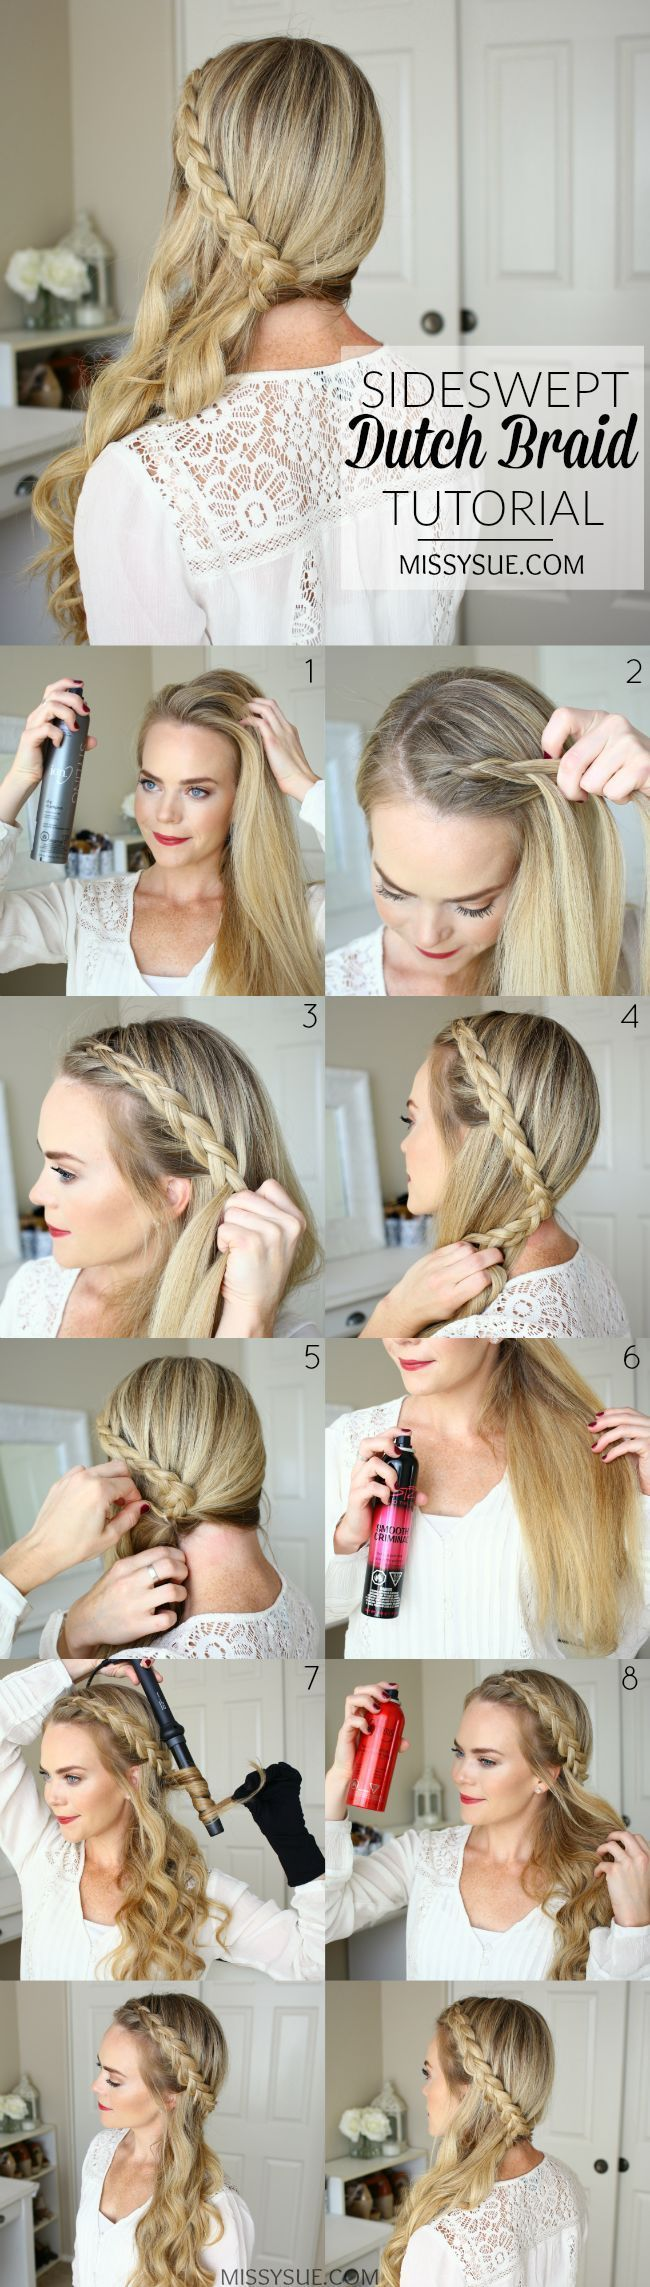 cool Sideswept Dutch Braid Tutorial... by http://www.dana-haircuts.xyz/hair-tutorials/sideswept-dutch-braid-tutorial/